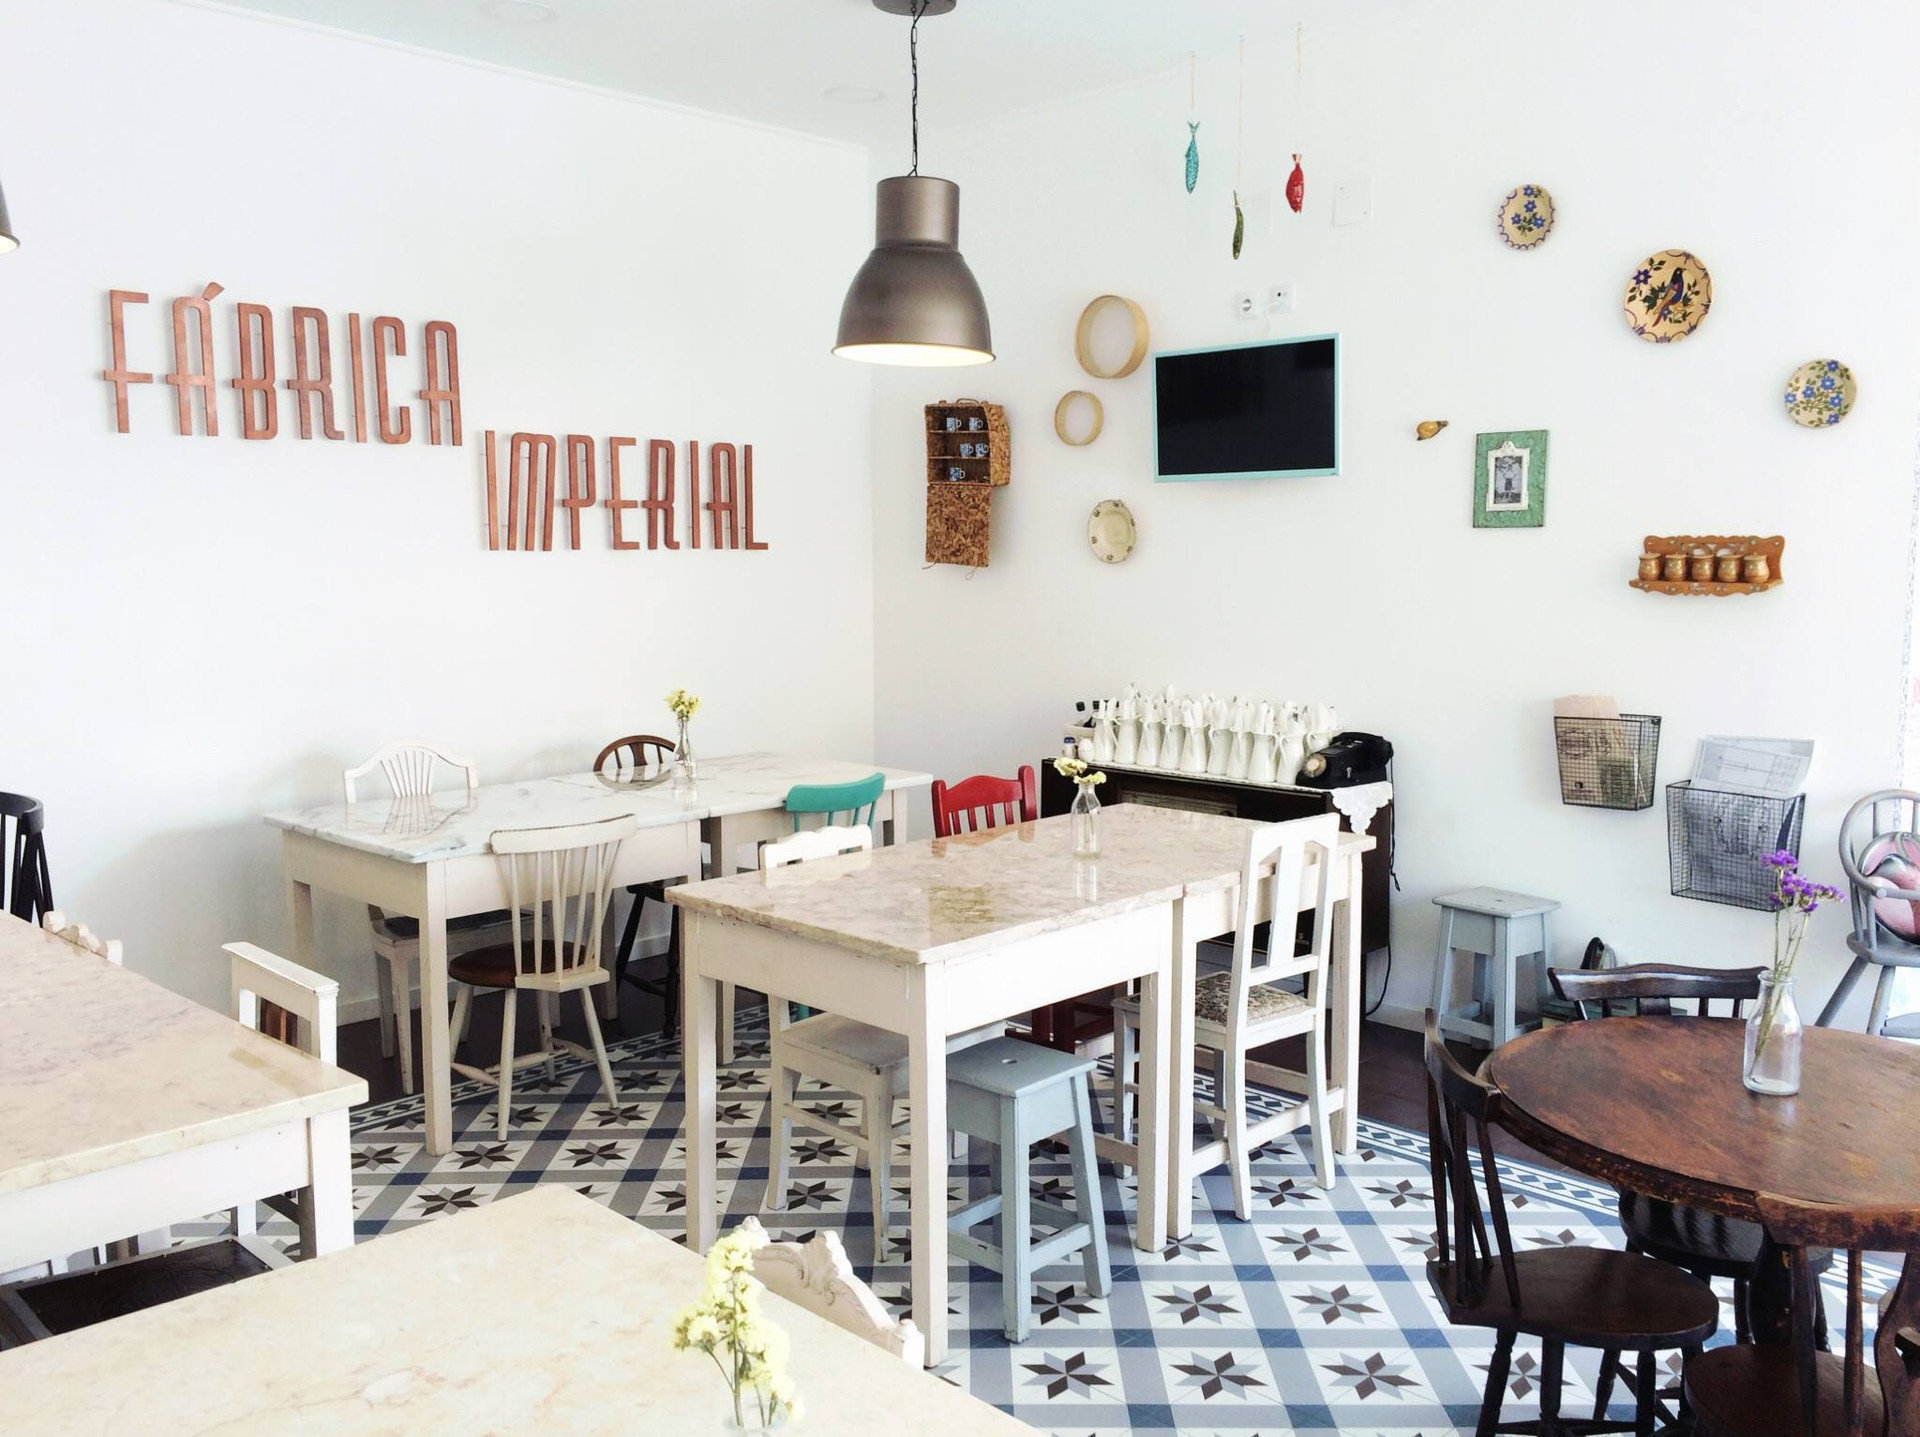 Fábrica Imperial: A Work-Friendly Place in Lisbon